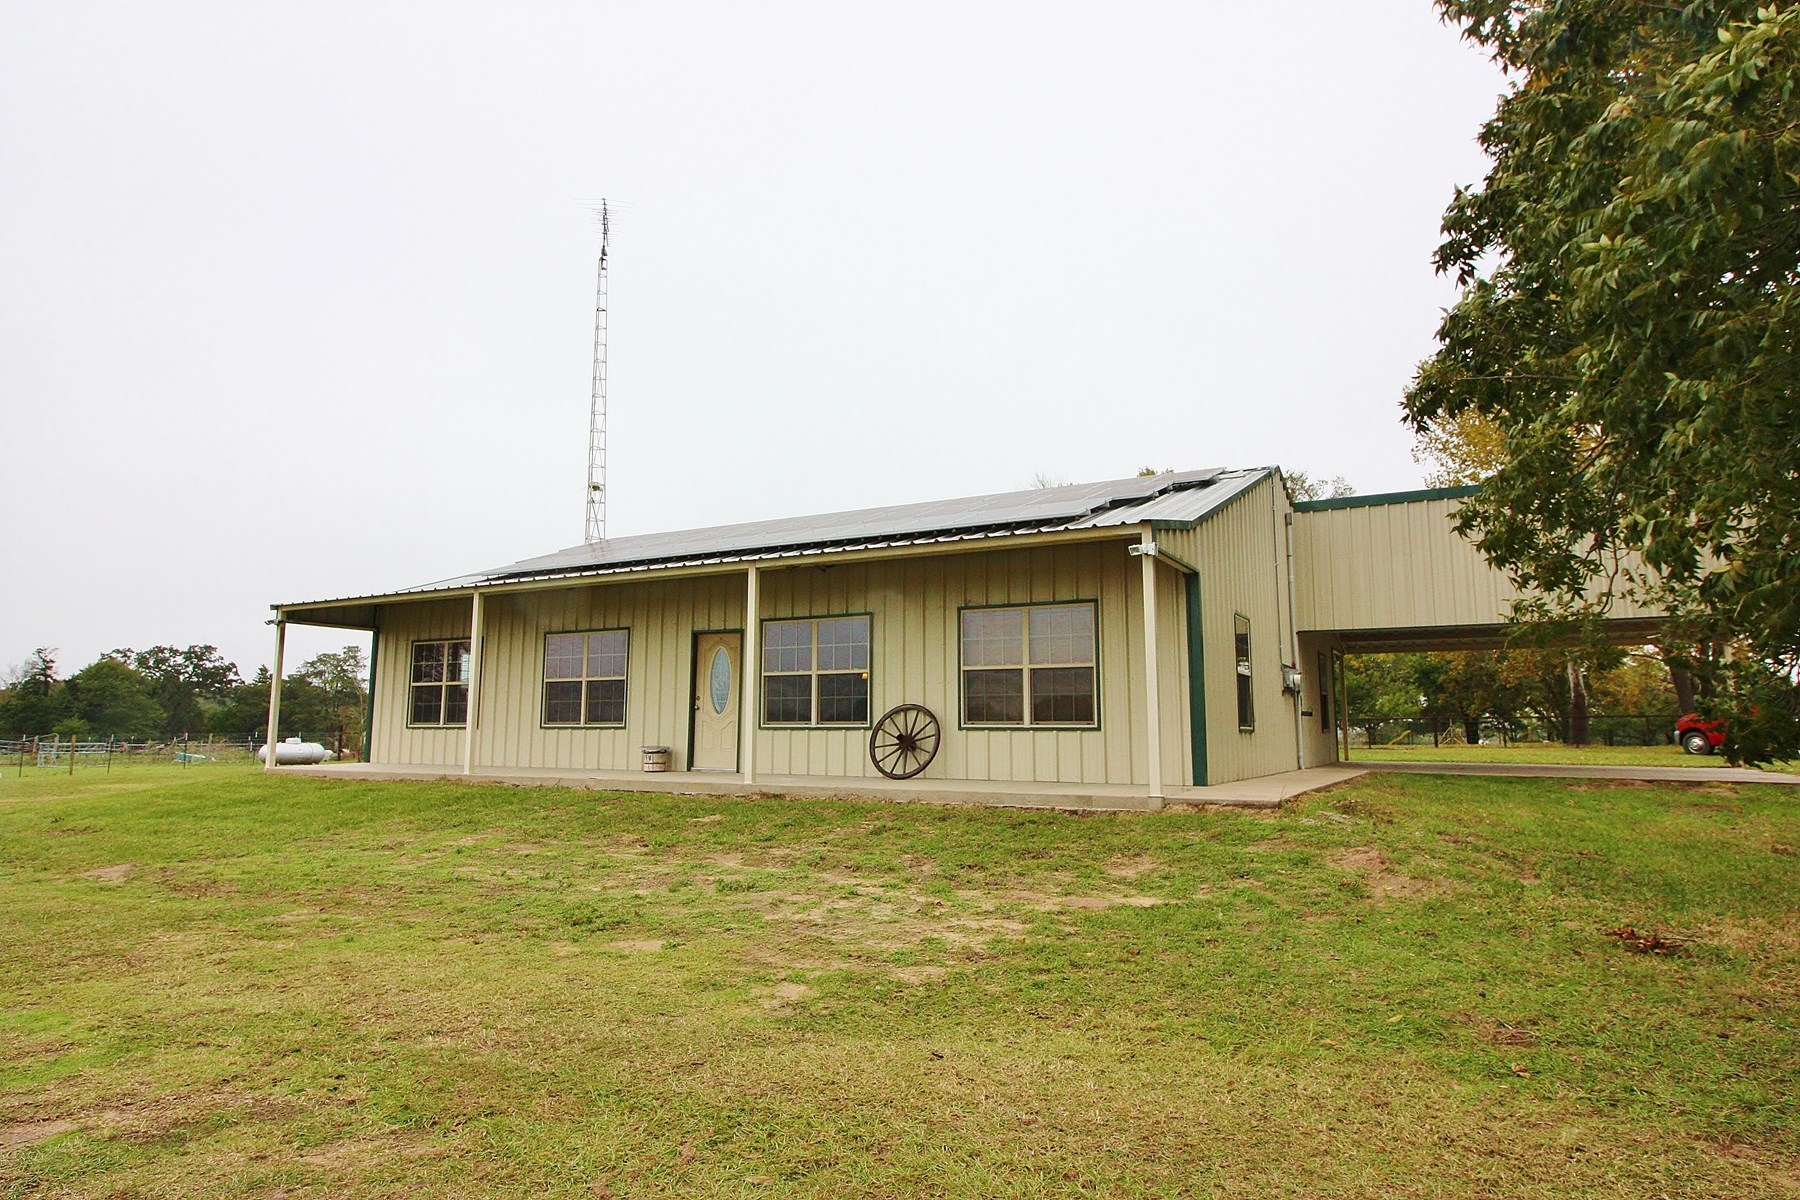 Country Home on Acreage For Sale in Teague, TX, Freestone Co